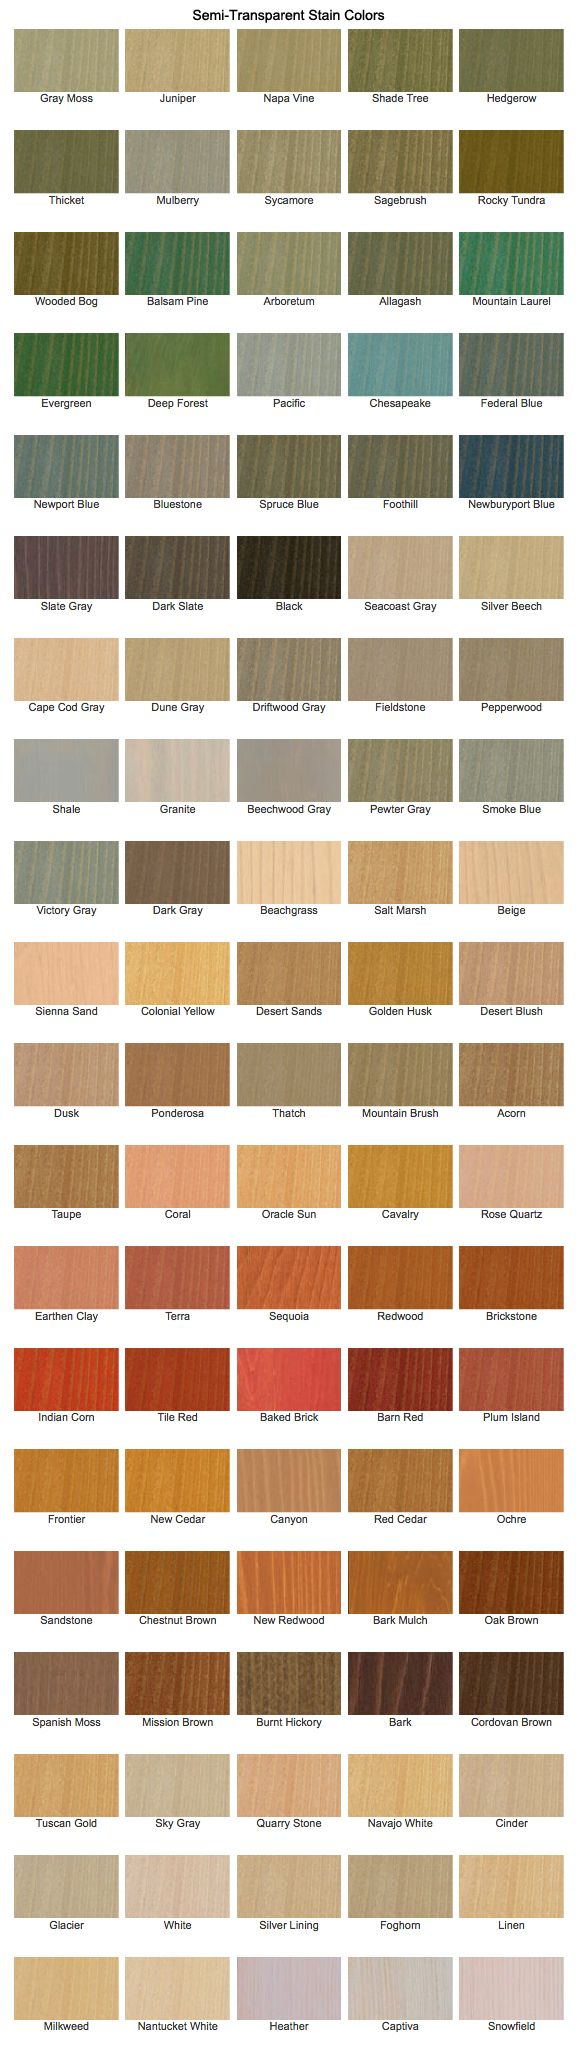 41 Best Exterior Images On Pinterest Deck Stain Colors Deck Colors And Colored Pencils